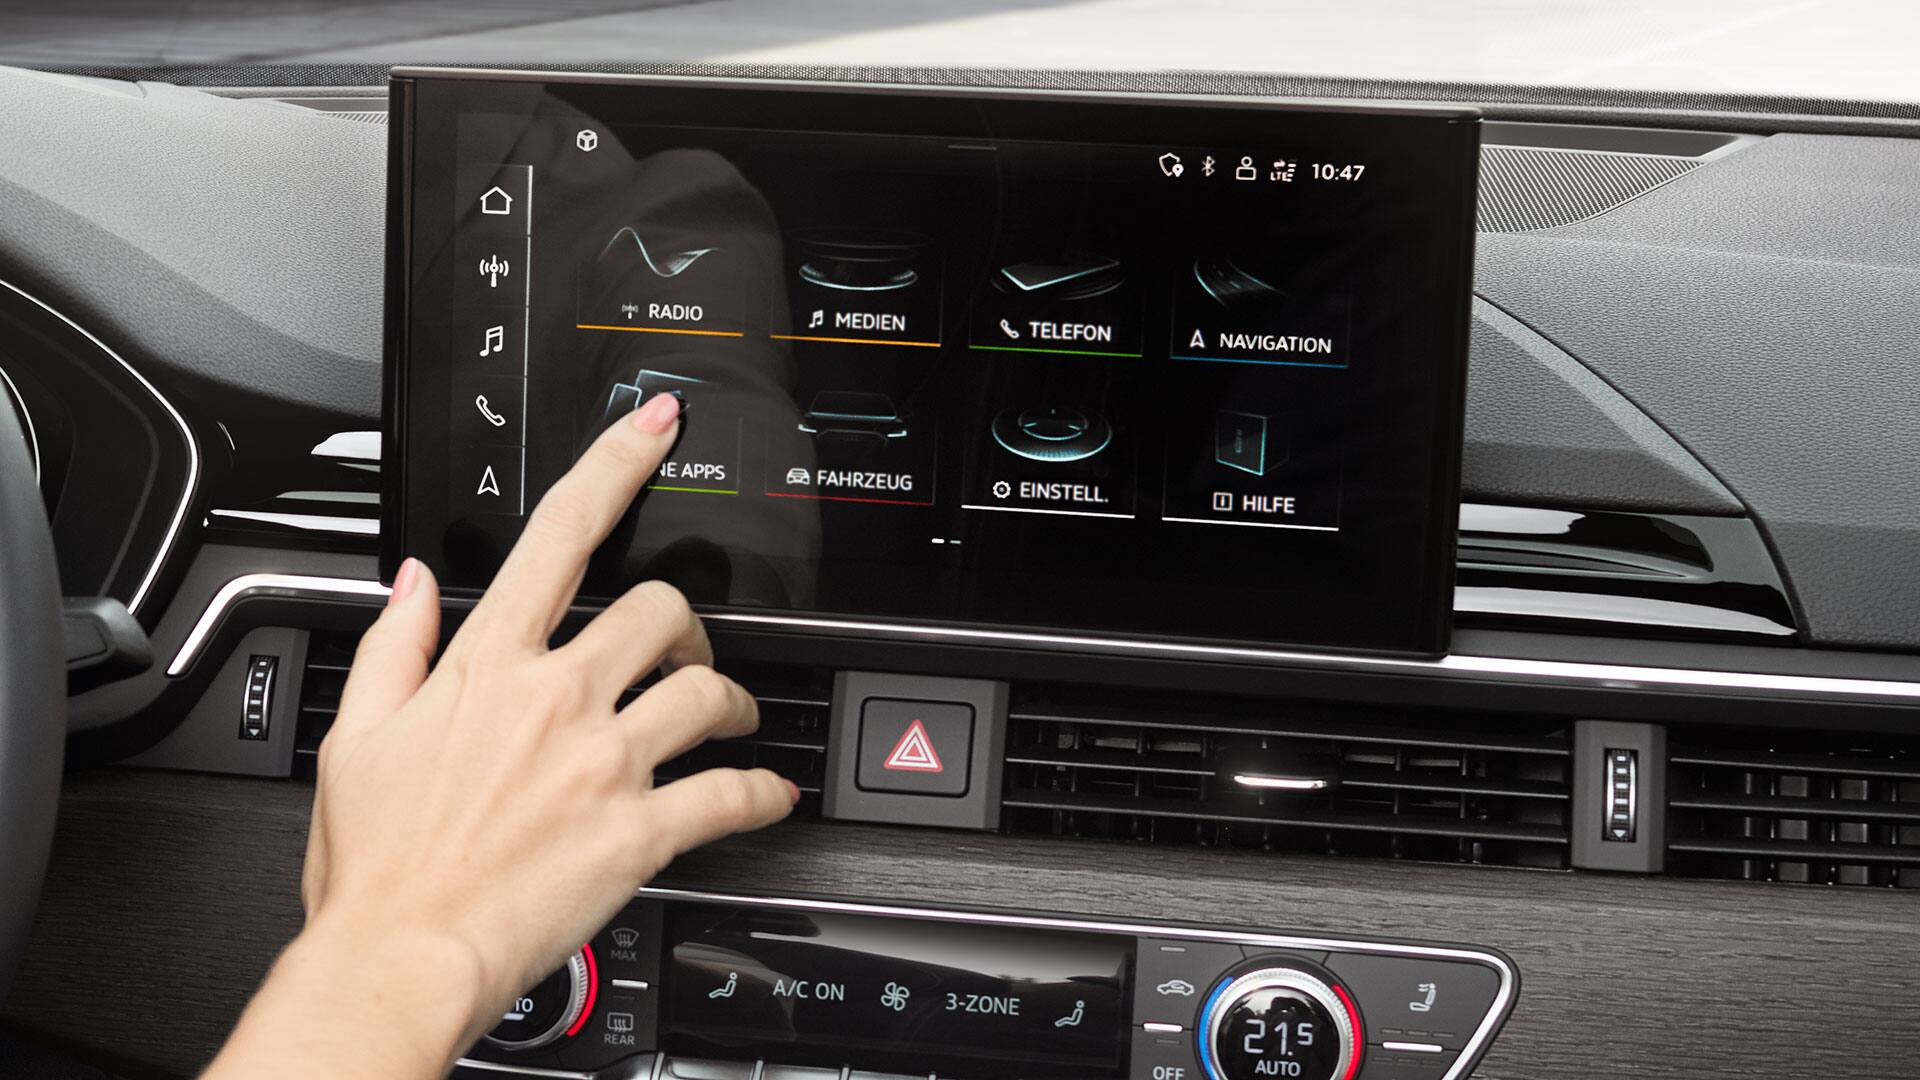 MMI touch display in the Audi A5 Sportback